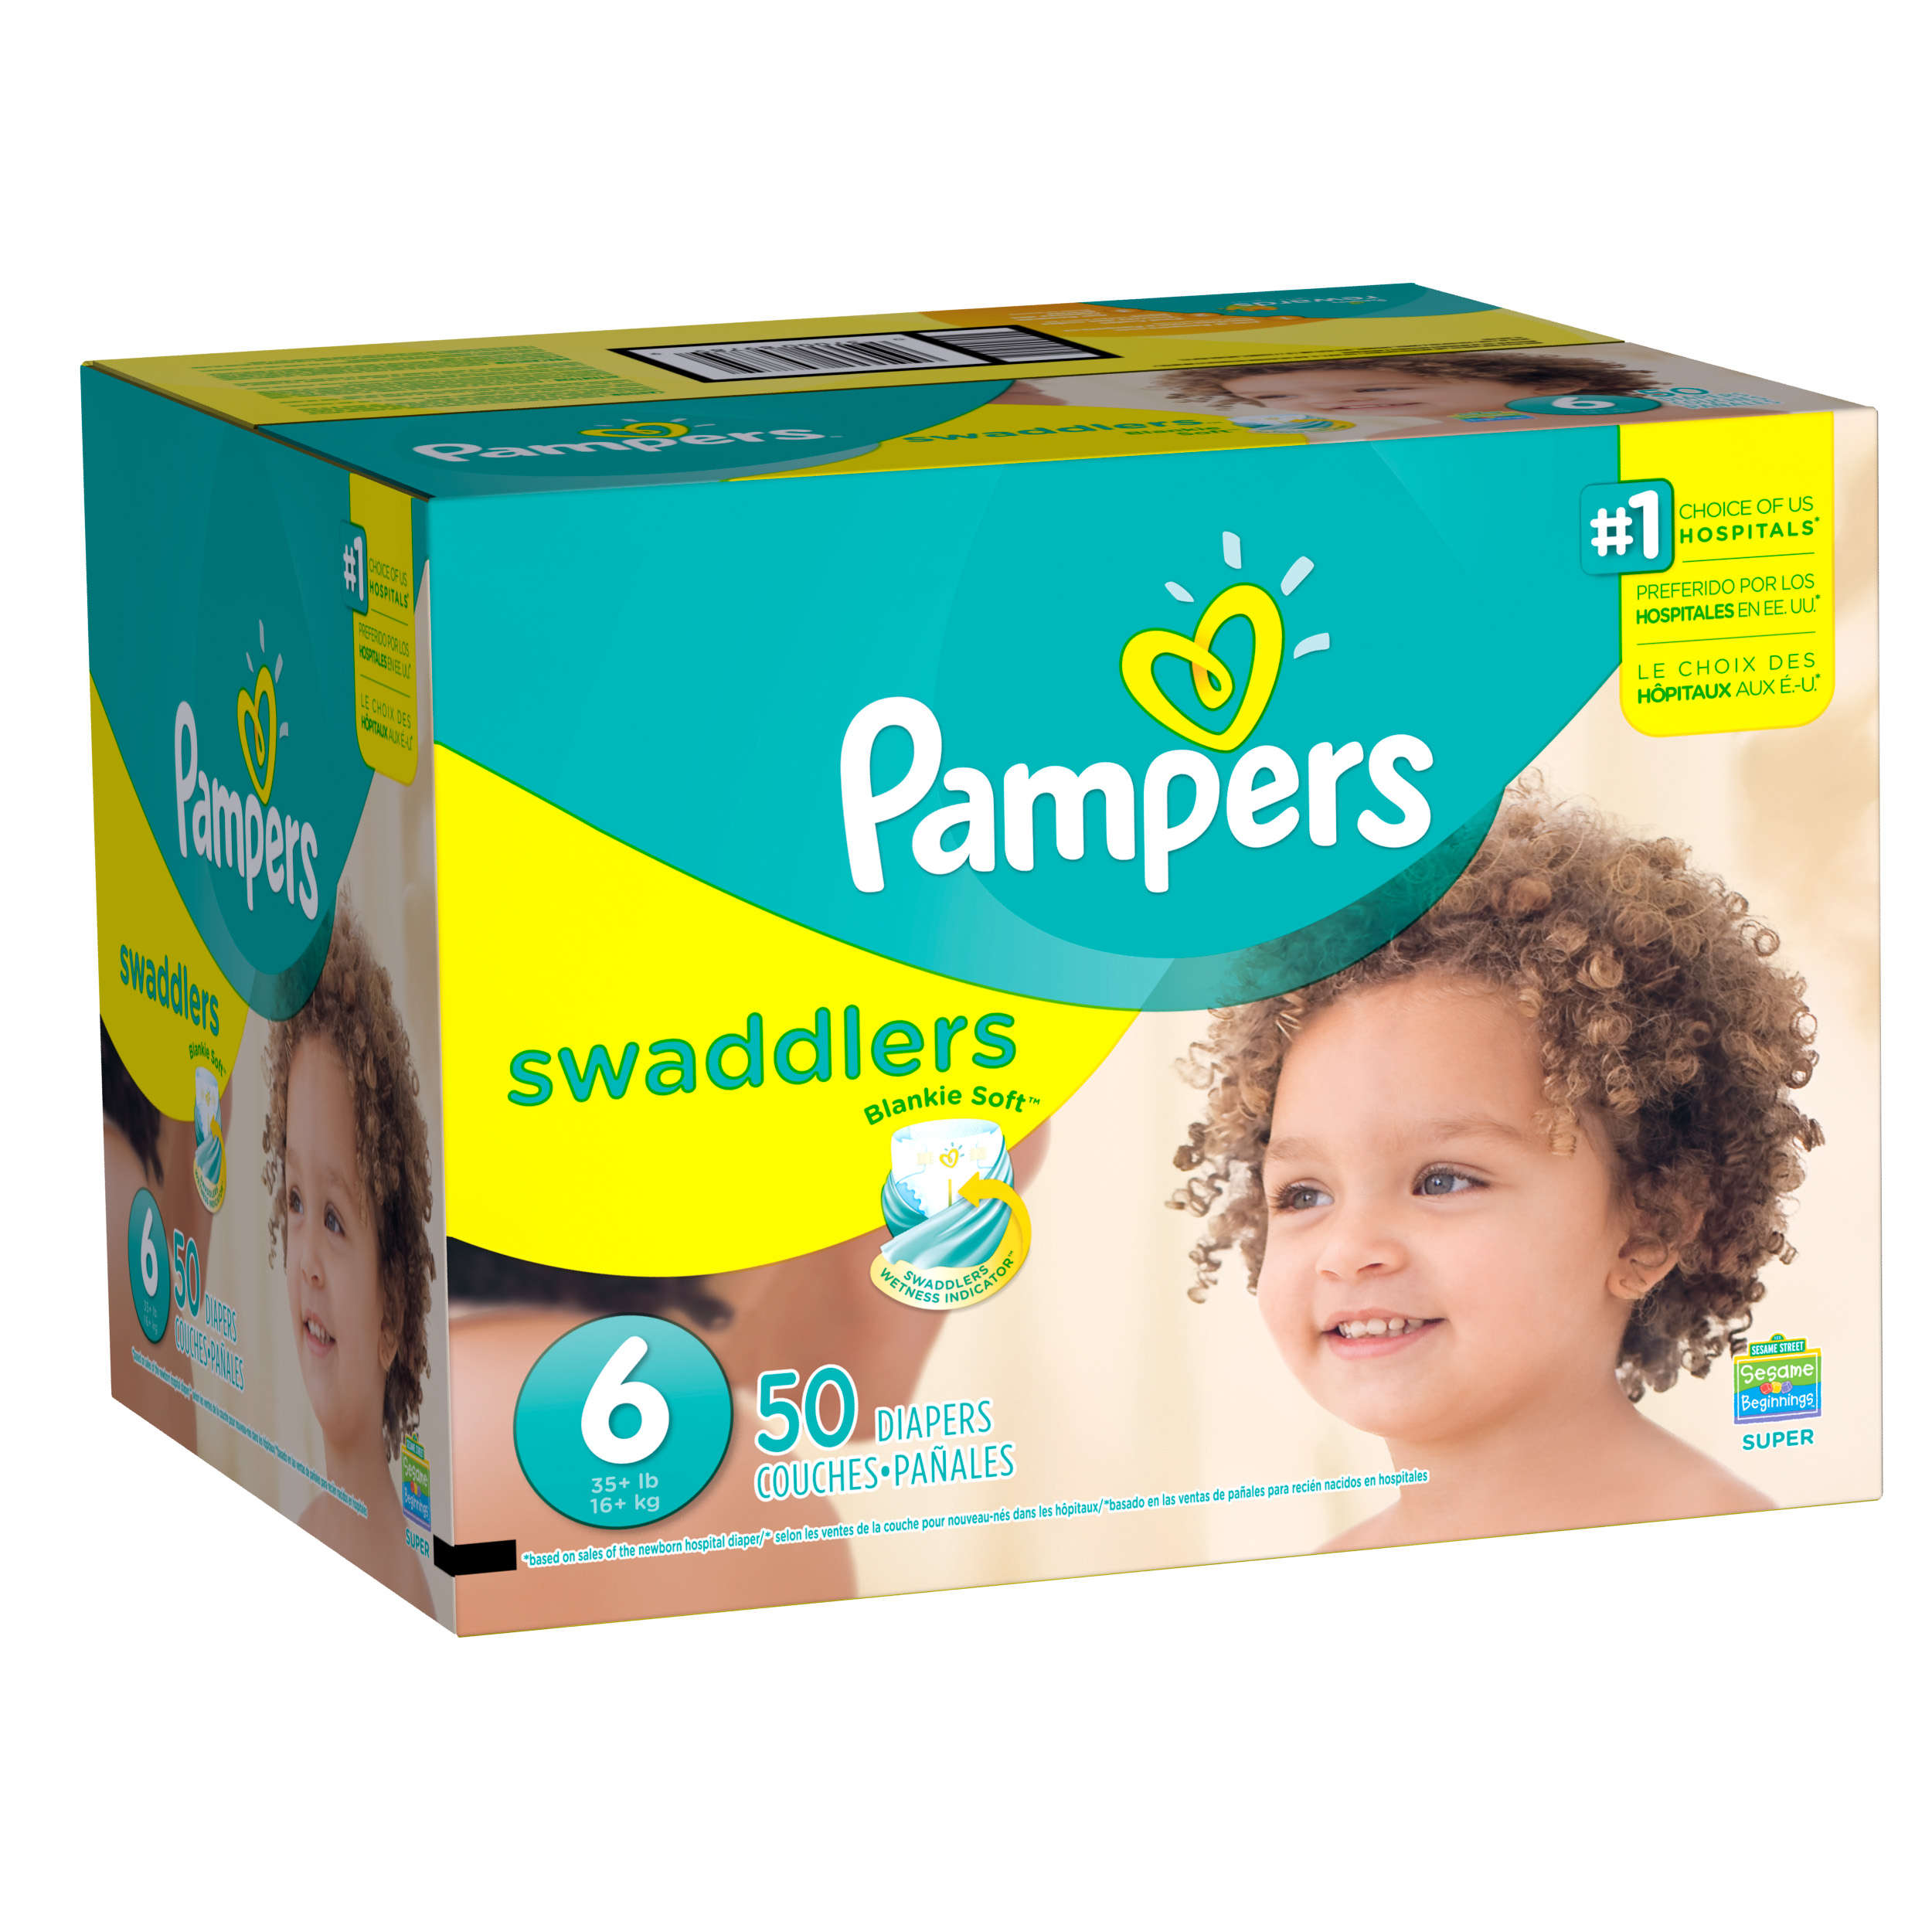 Pampers Swaddlers Diapers, Size 6, 50 Diapers